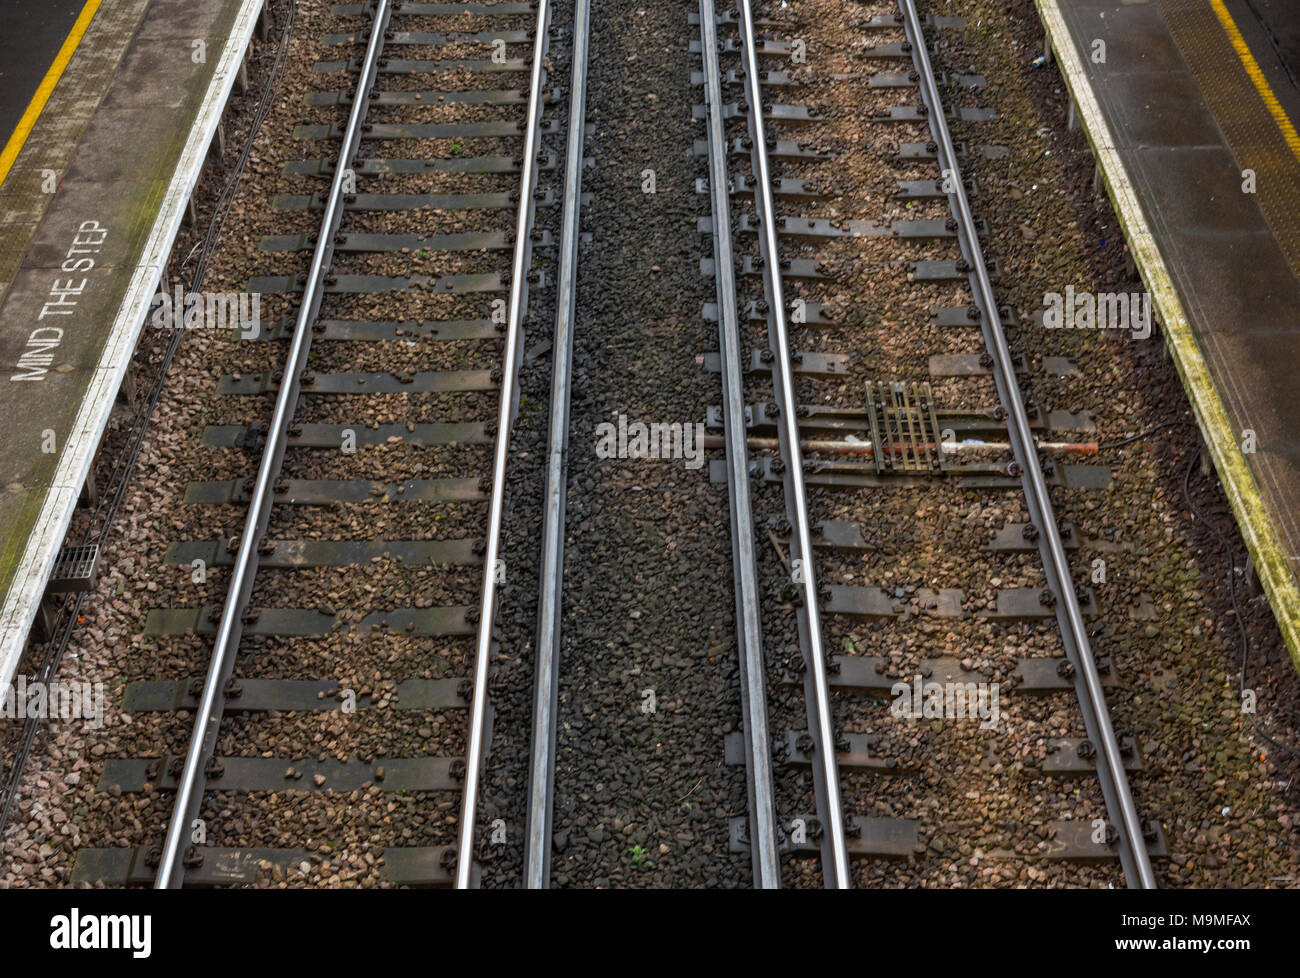 Looking down onto a railway tracks or lines at a station between the passenger platforms. Two railway lines tapering into the distance with edges line Stock Photo